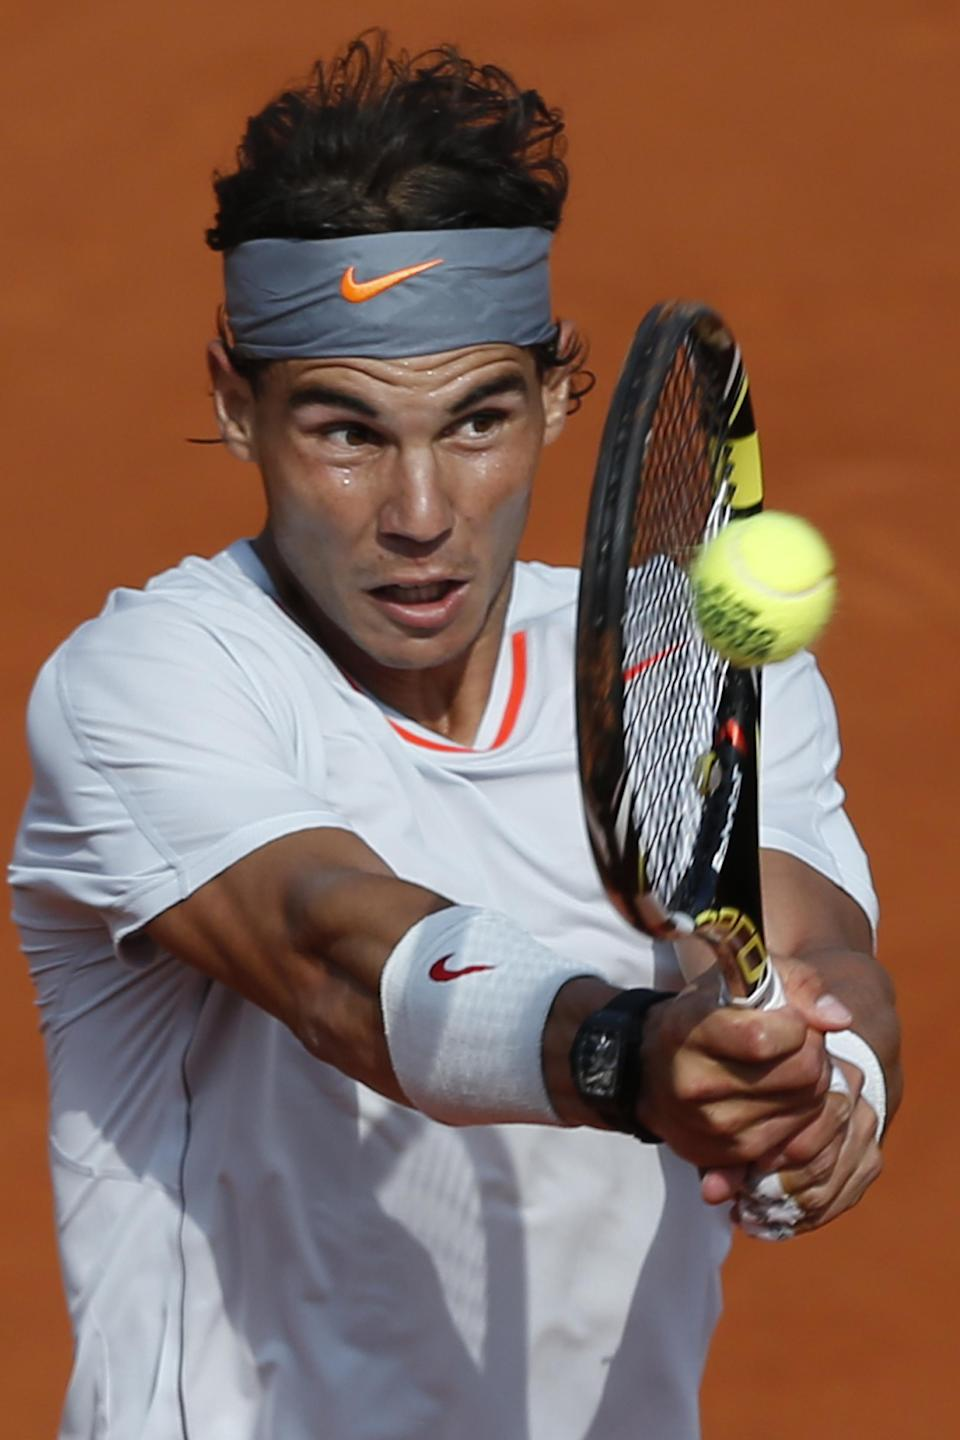 Spain's Rafael Nadal returns against Switzerland's Stanislas Wawrinka in their quarterfinal match at the French Open tennis tournament, at Roland Garros stadium in Paris, Wednesday June 5, 2013. (AP Photo/Petr David Josek)